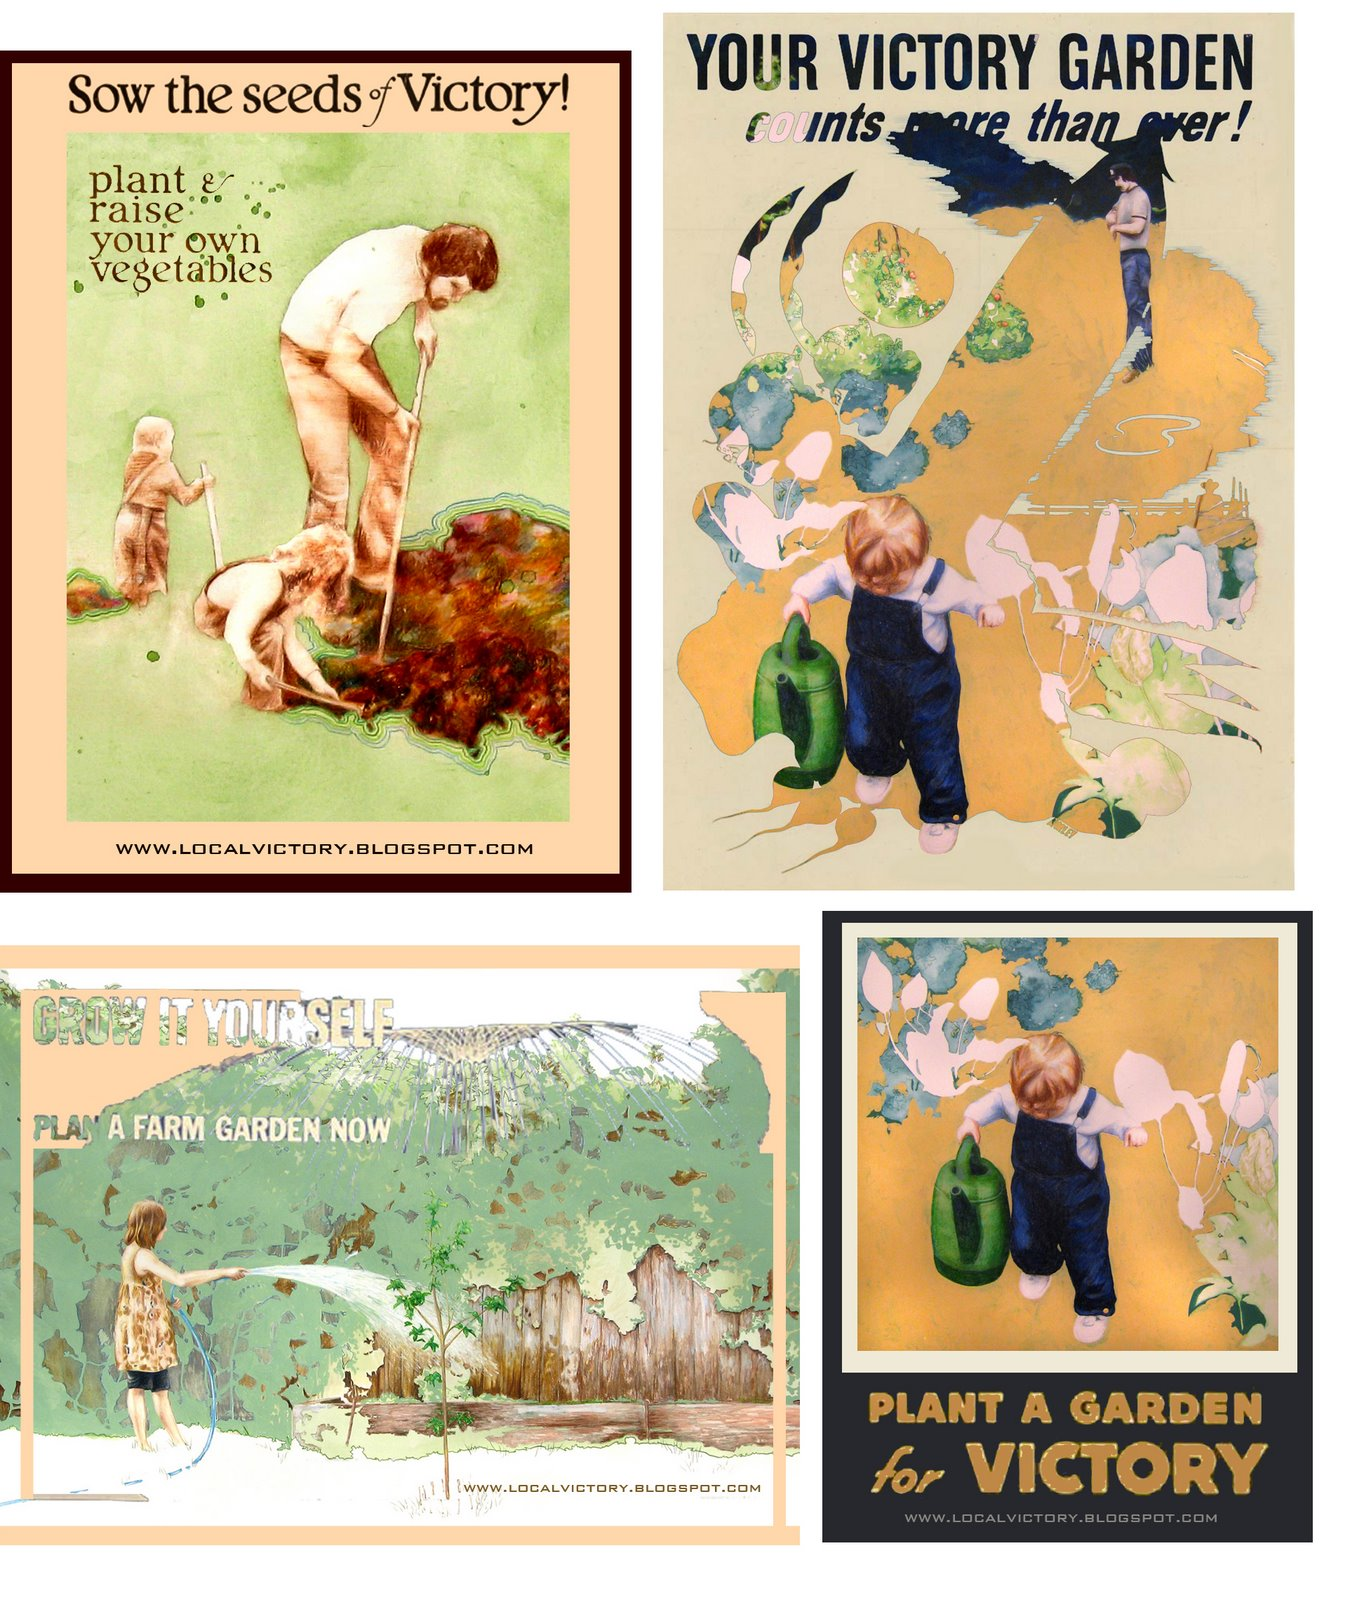 Rebecca Shelly, Victory Garden posters